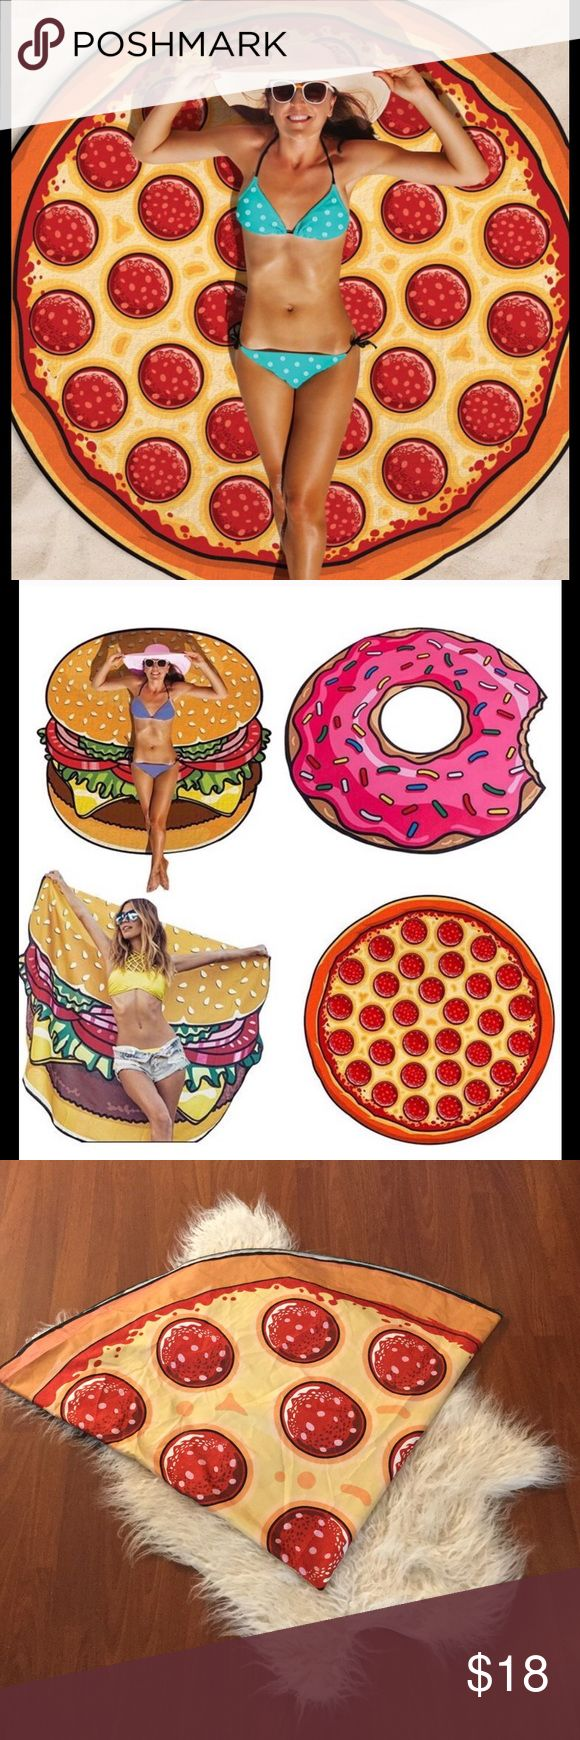 Pizza beach mat, round beach mat Great condition, used once at the pool. Round pizza beach mat. Use to lay on and as a sarong. Accessories